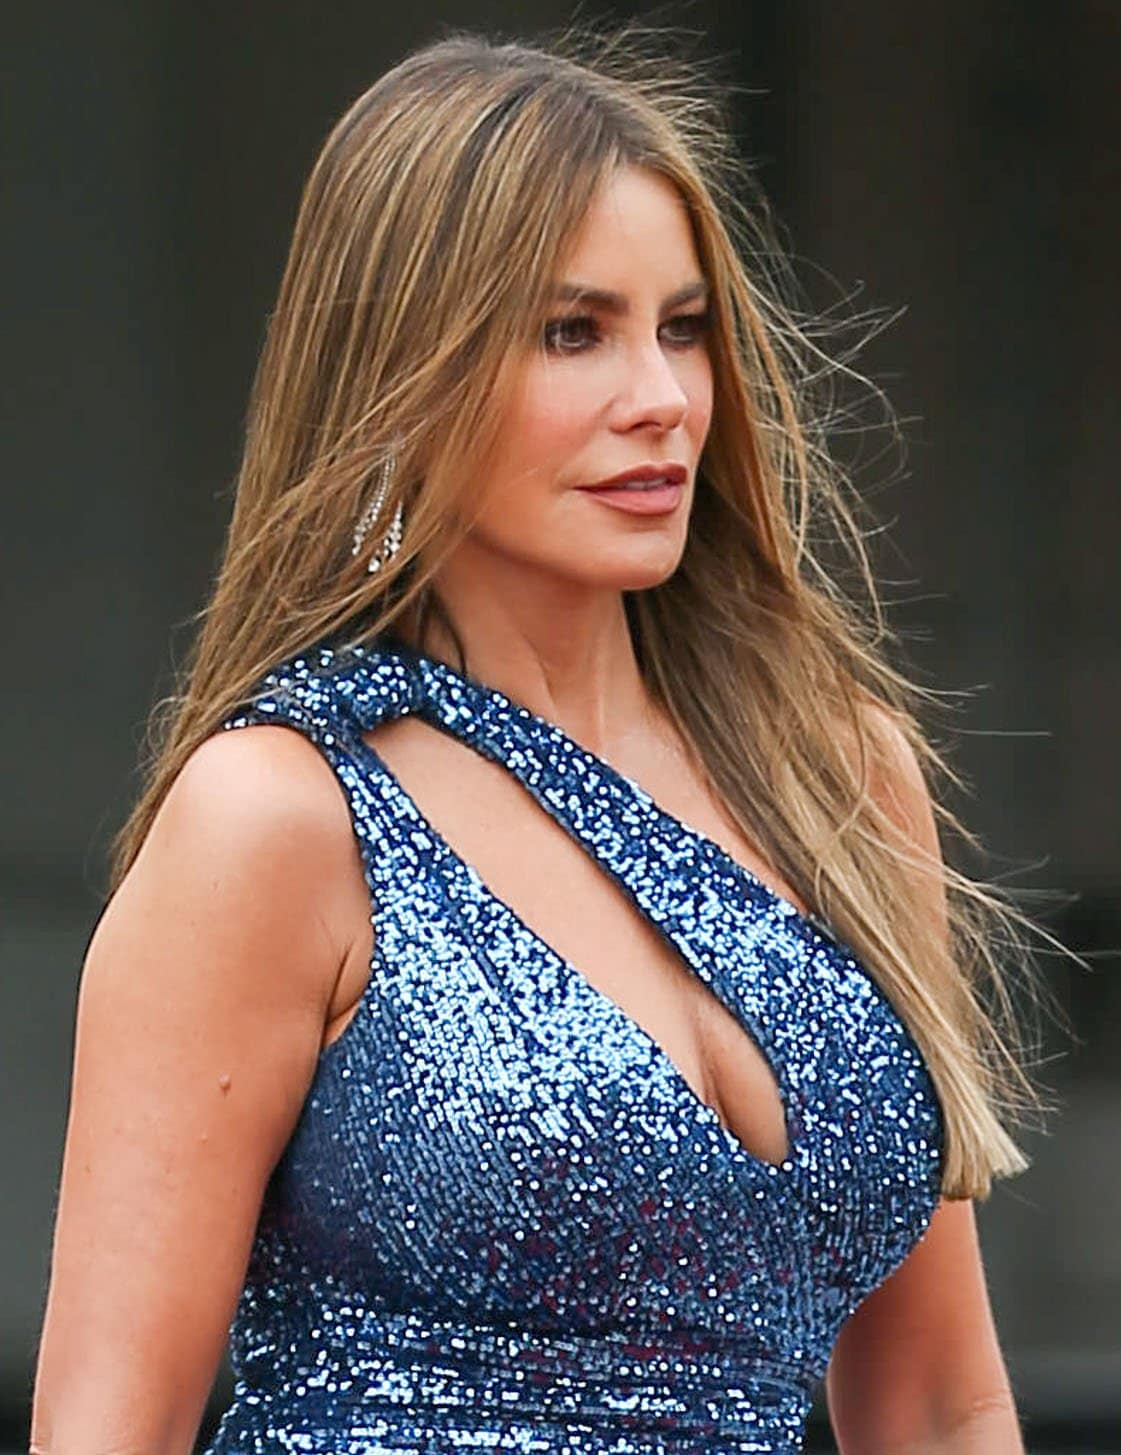 Sofia Vergara styles her look with diamond chandelier earrings and wears a full face of makeup